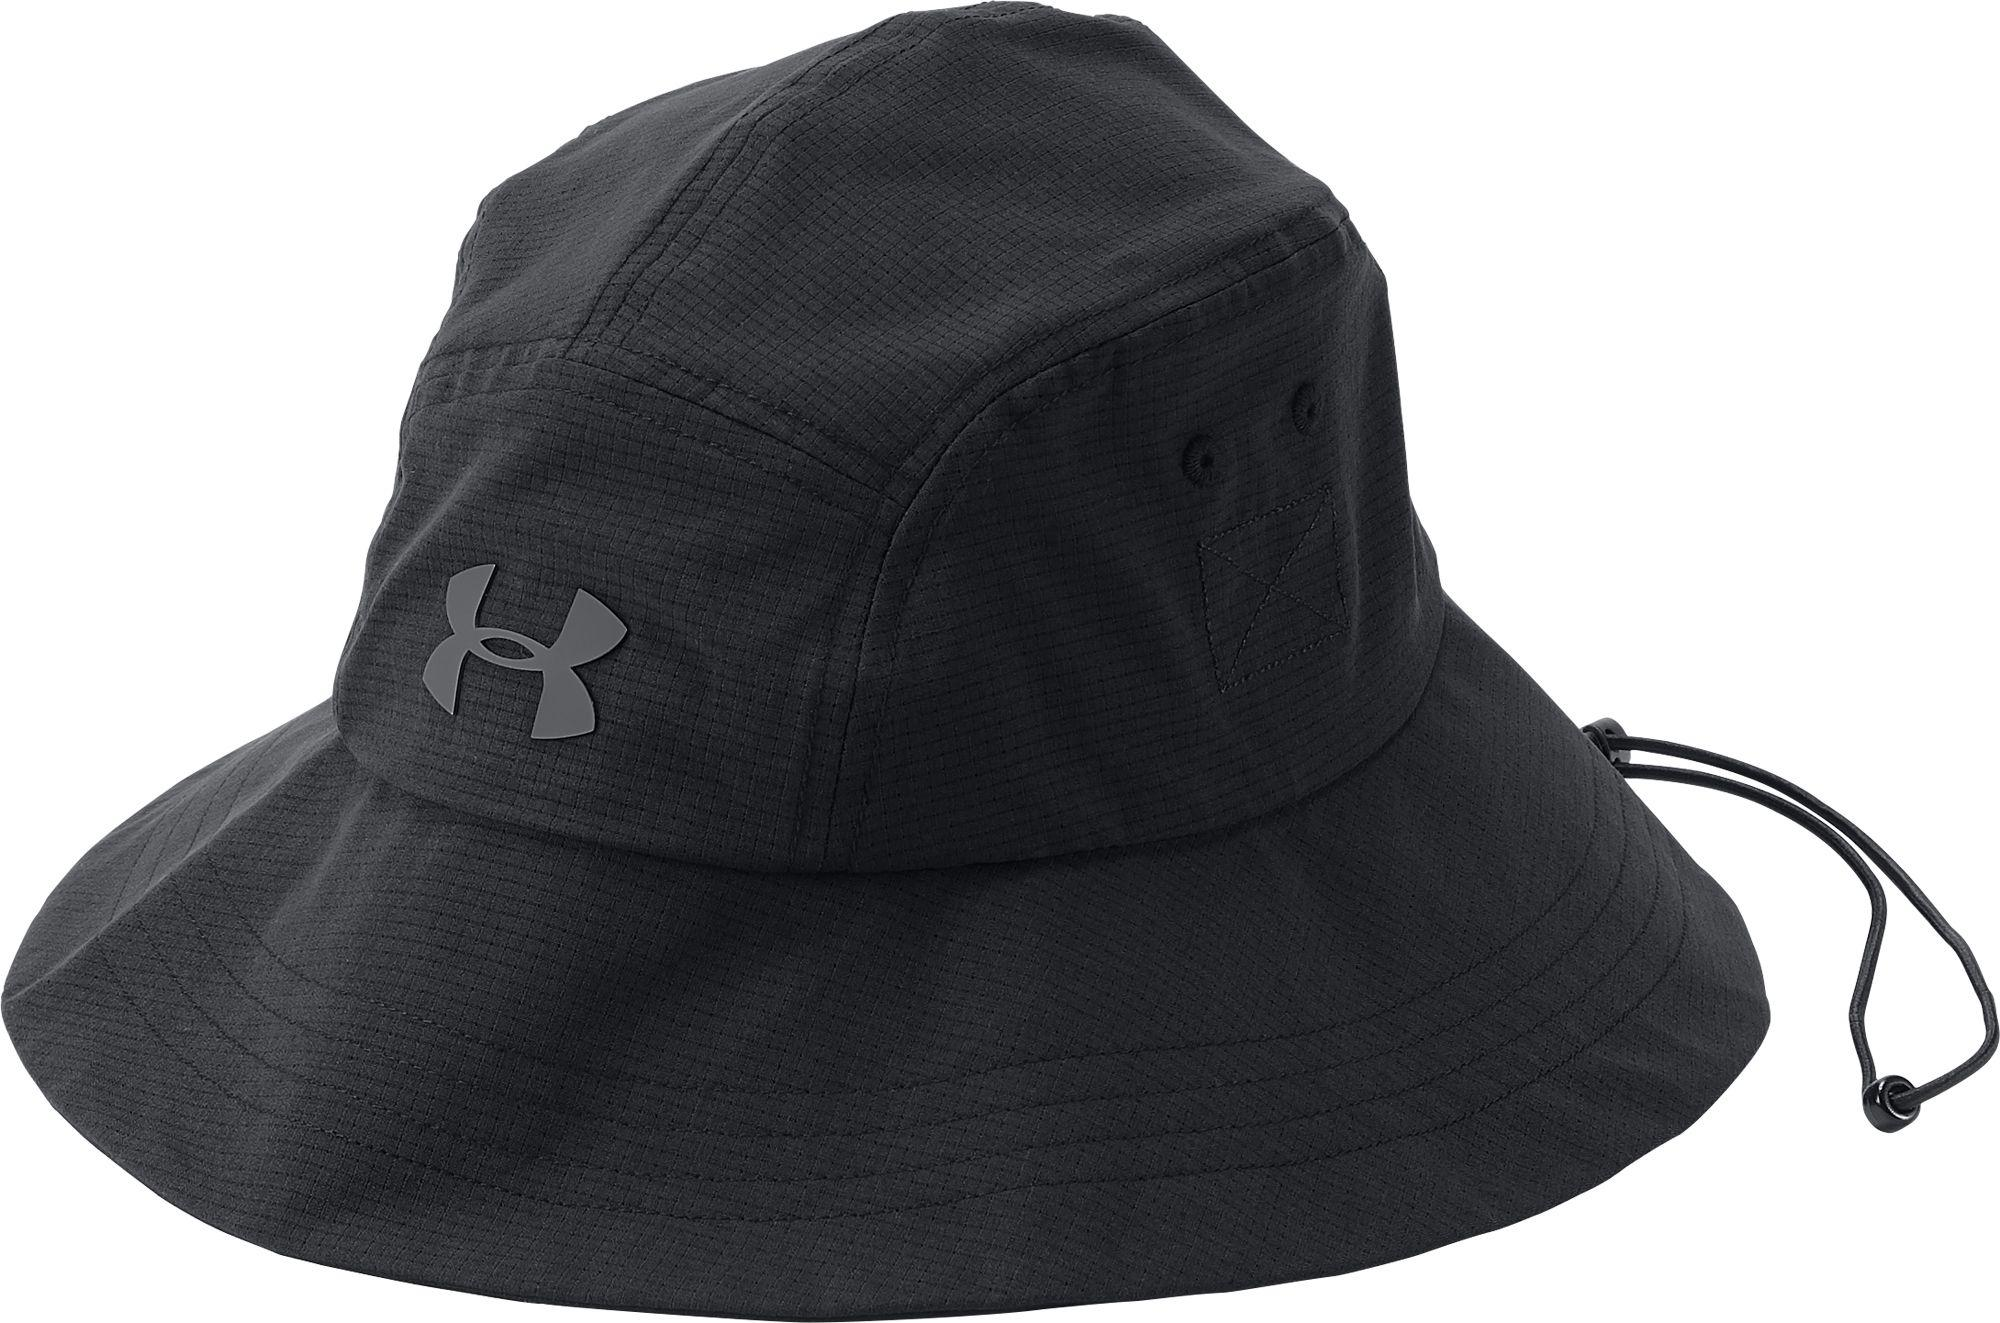 1fcdc503fb6 ... reputable site b7fca 4fc45 Under Armour. Mens Black Armourvent Warrior  2.0 Bucket Hat ...